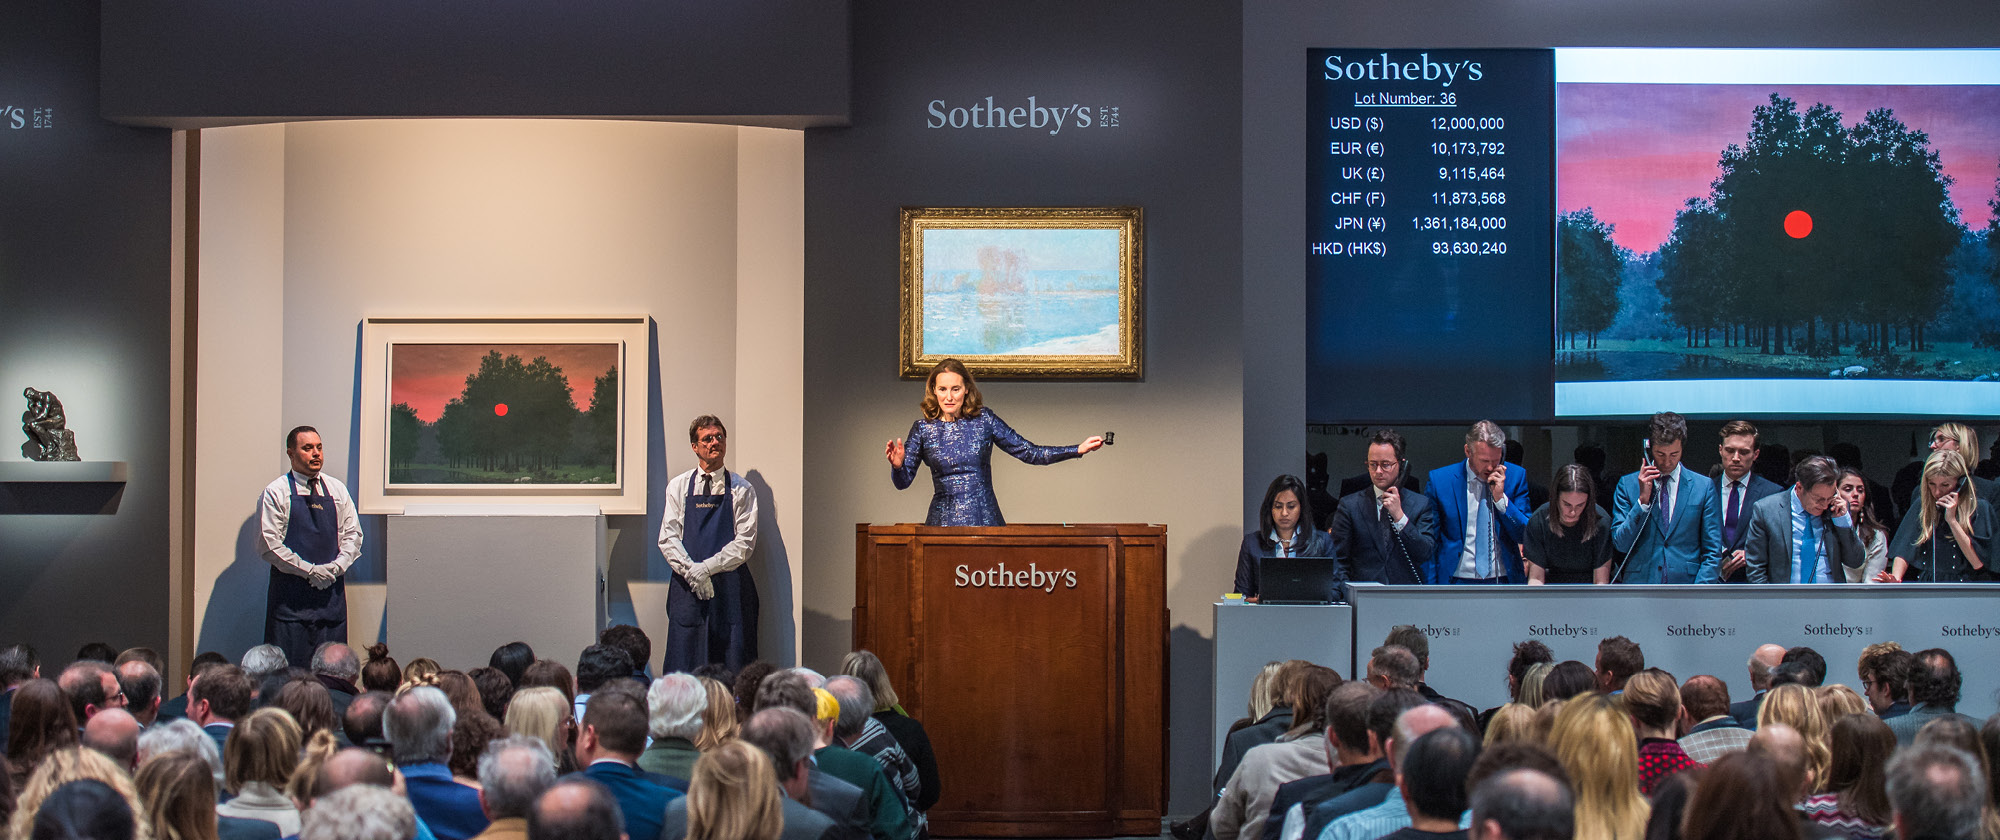 Sotheby's Brand Auction House